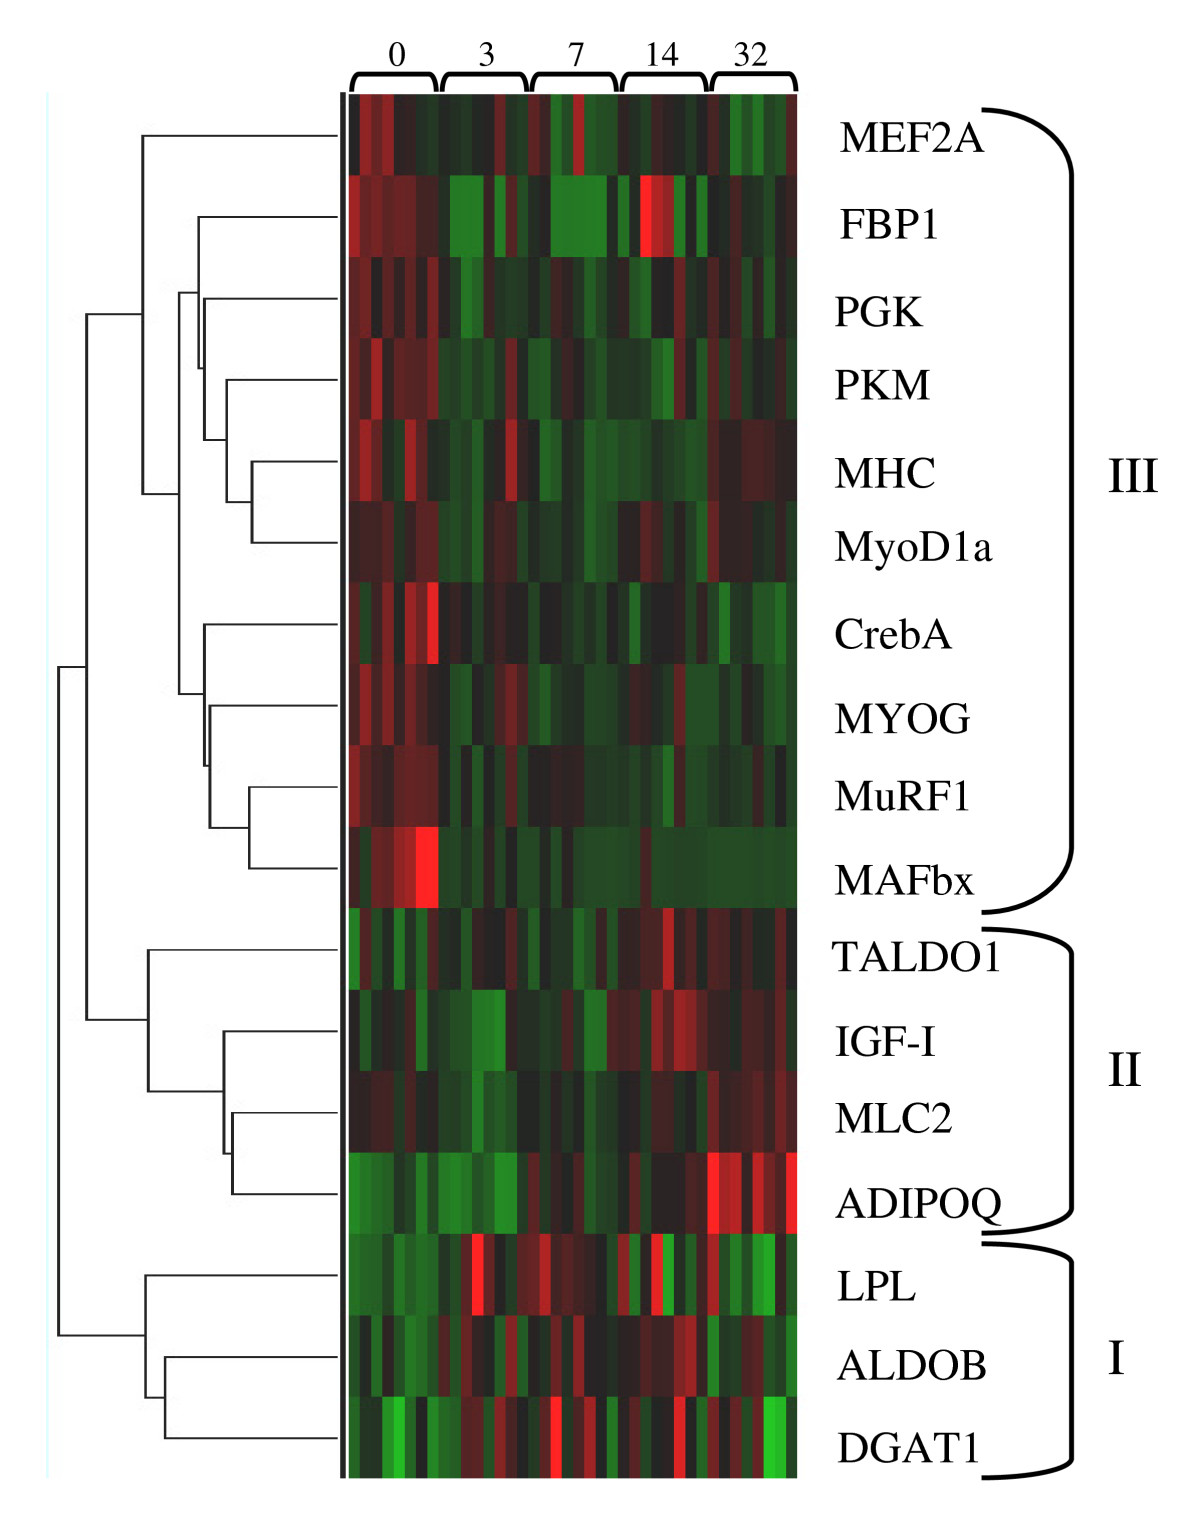 http://static-content.springer.com/image/art%3A10.1186%2F1742-9994-6-18/MediaObjects/12983_2009_Article_106_Fig2_HTML.jpg